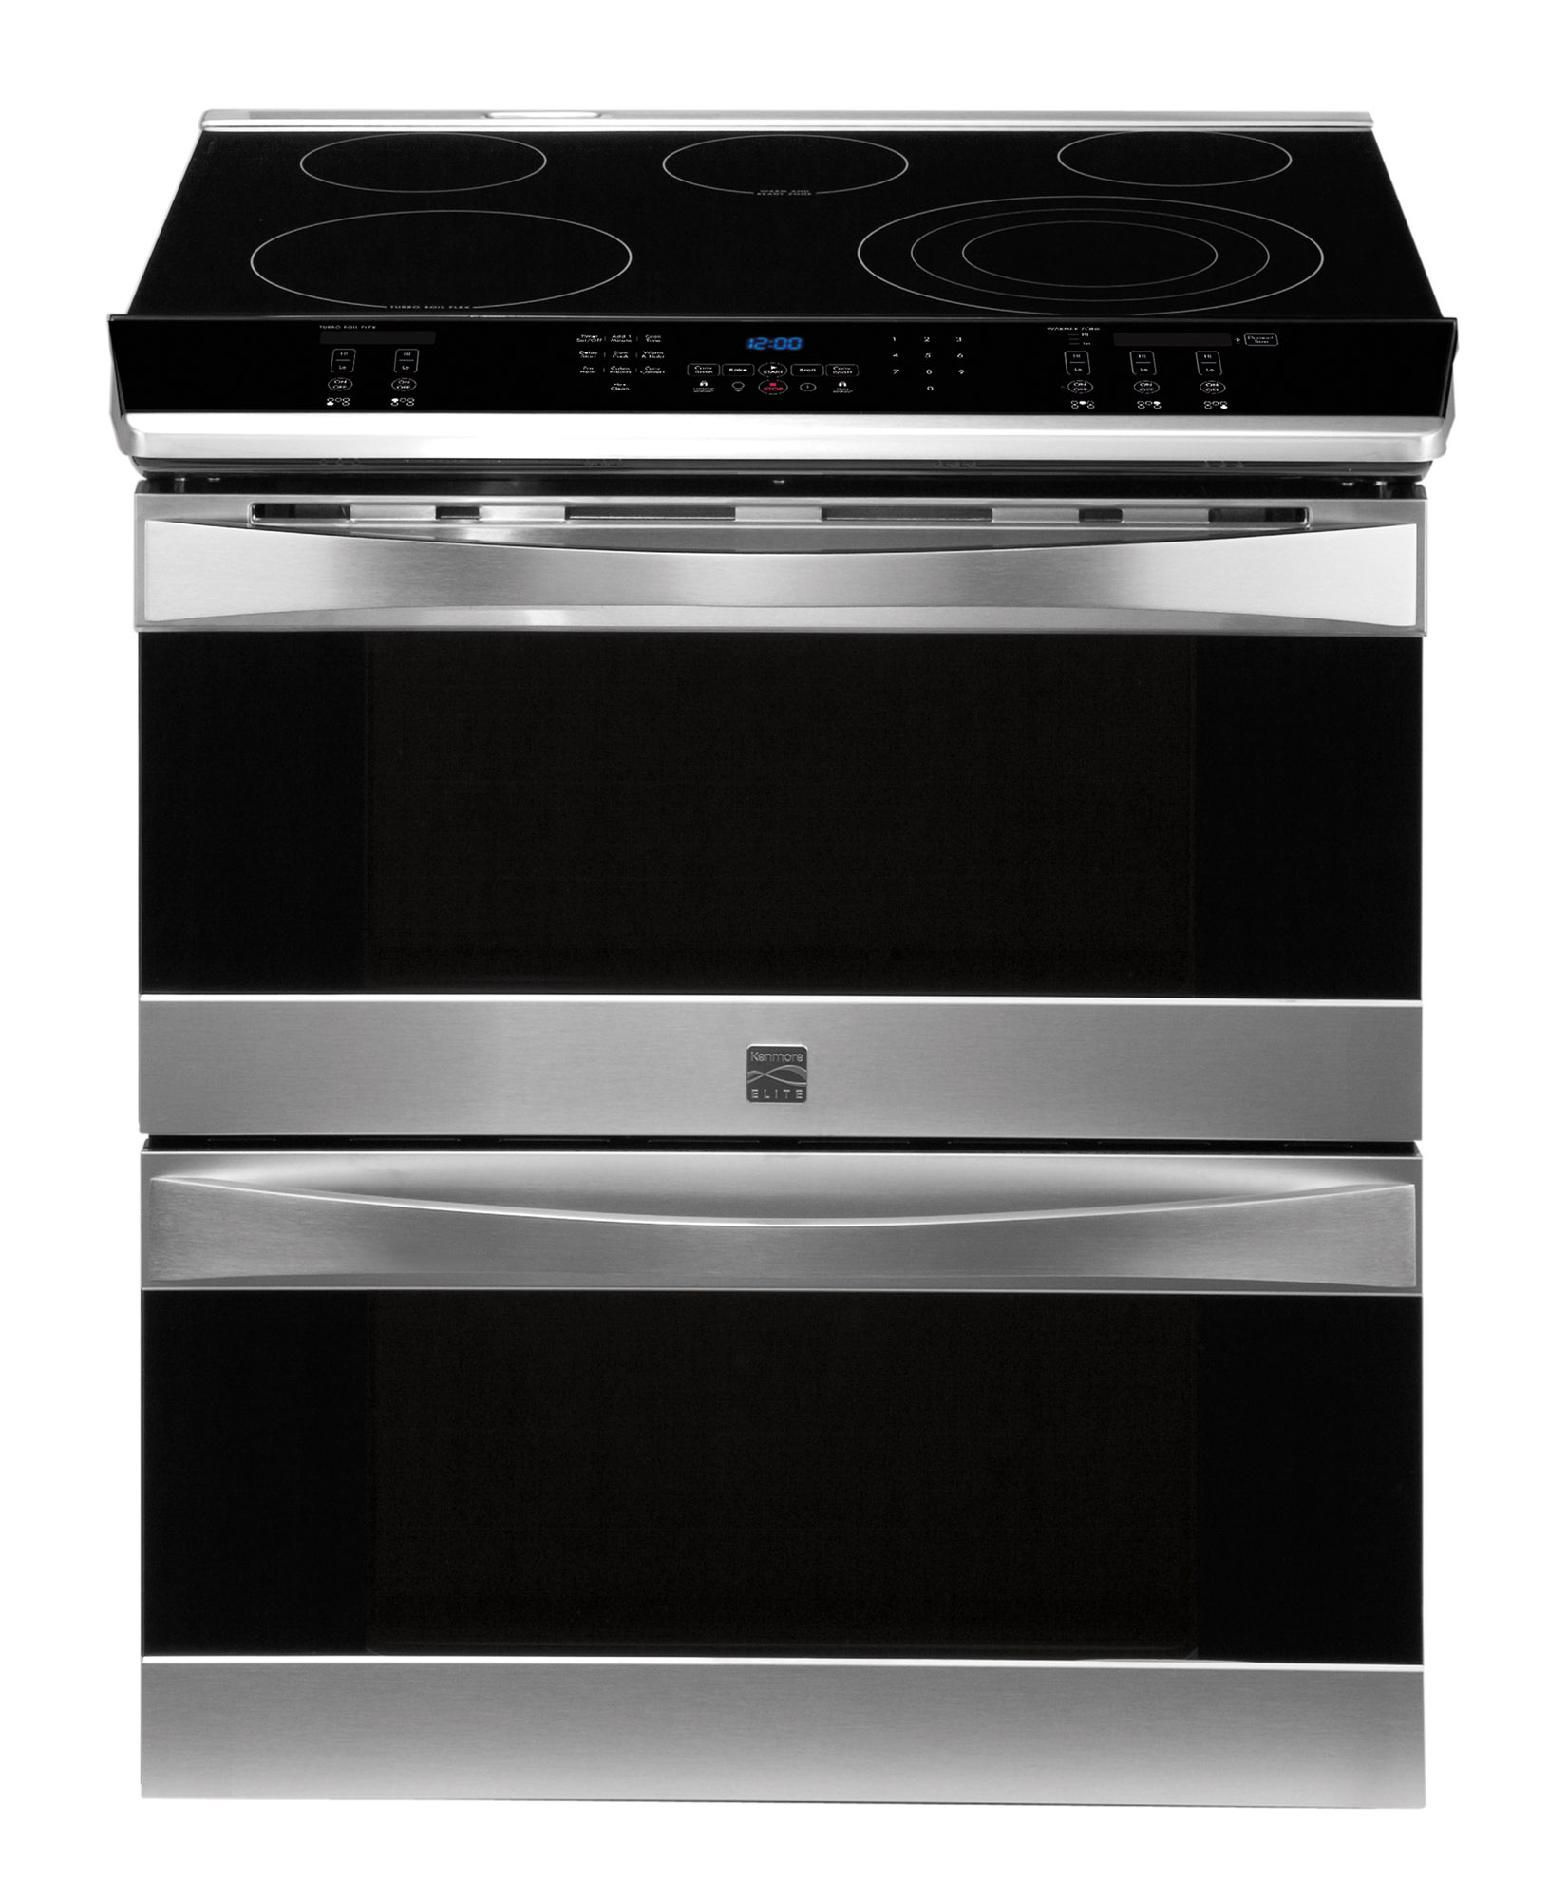 This Is The Kenmore Elite Electric With Double Oven They Also Have An Microwave